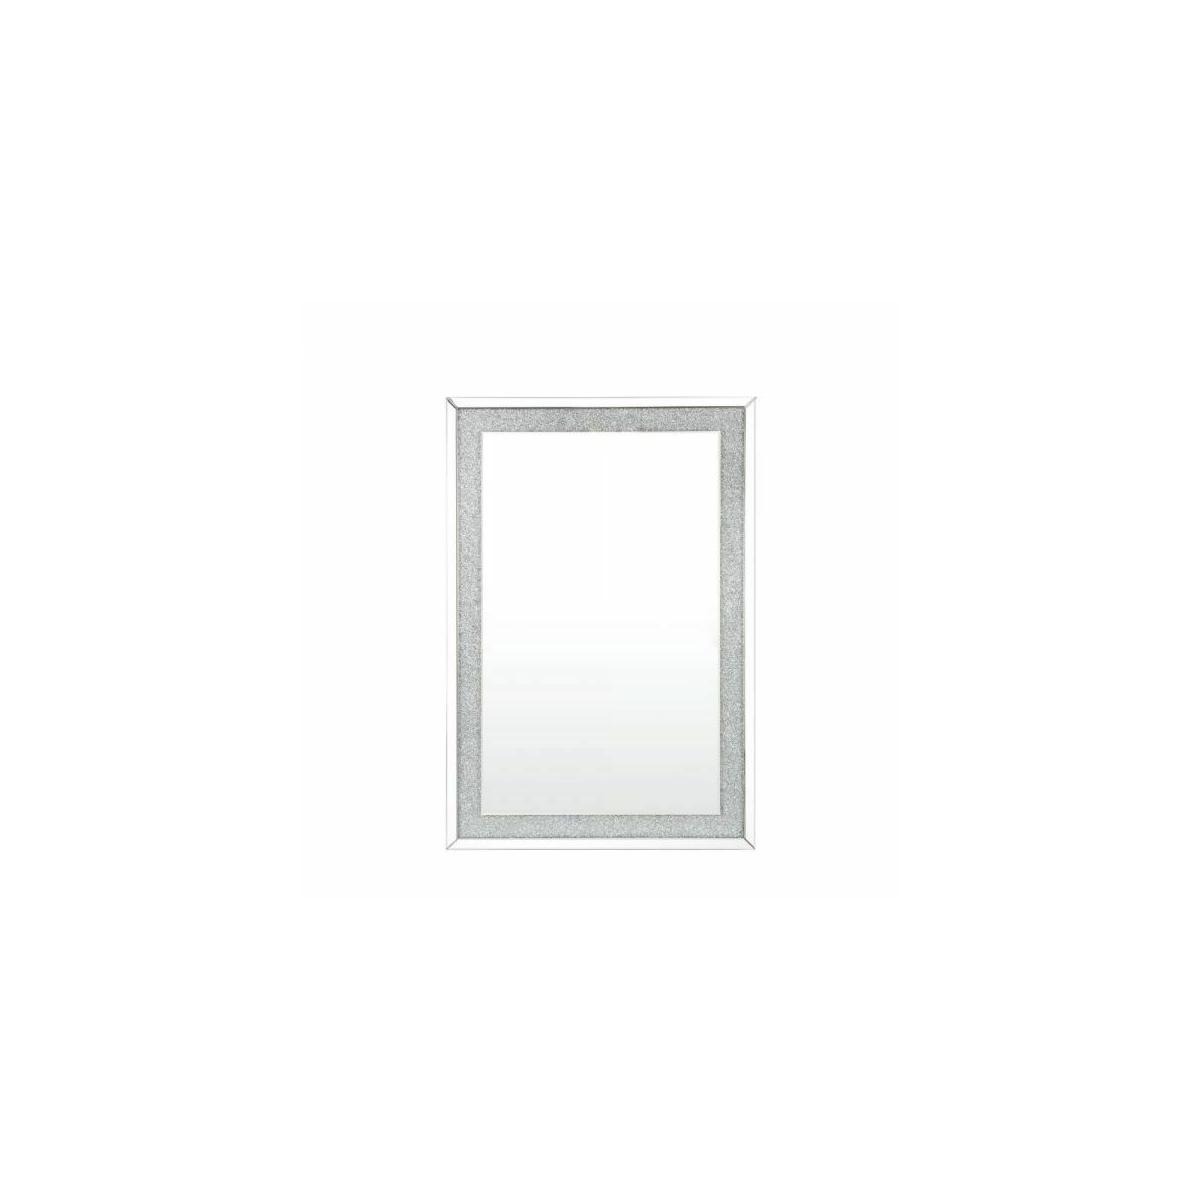 ACME Noralie Wall Decor - 97719 - Glam - Glass, MDF, Faux Diamonds (Acrylic), LED - Mirrored and Faux Diamonds